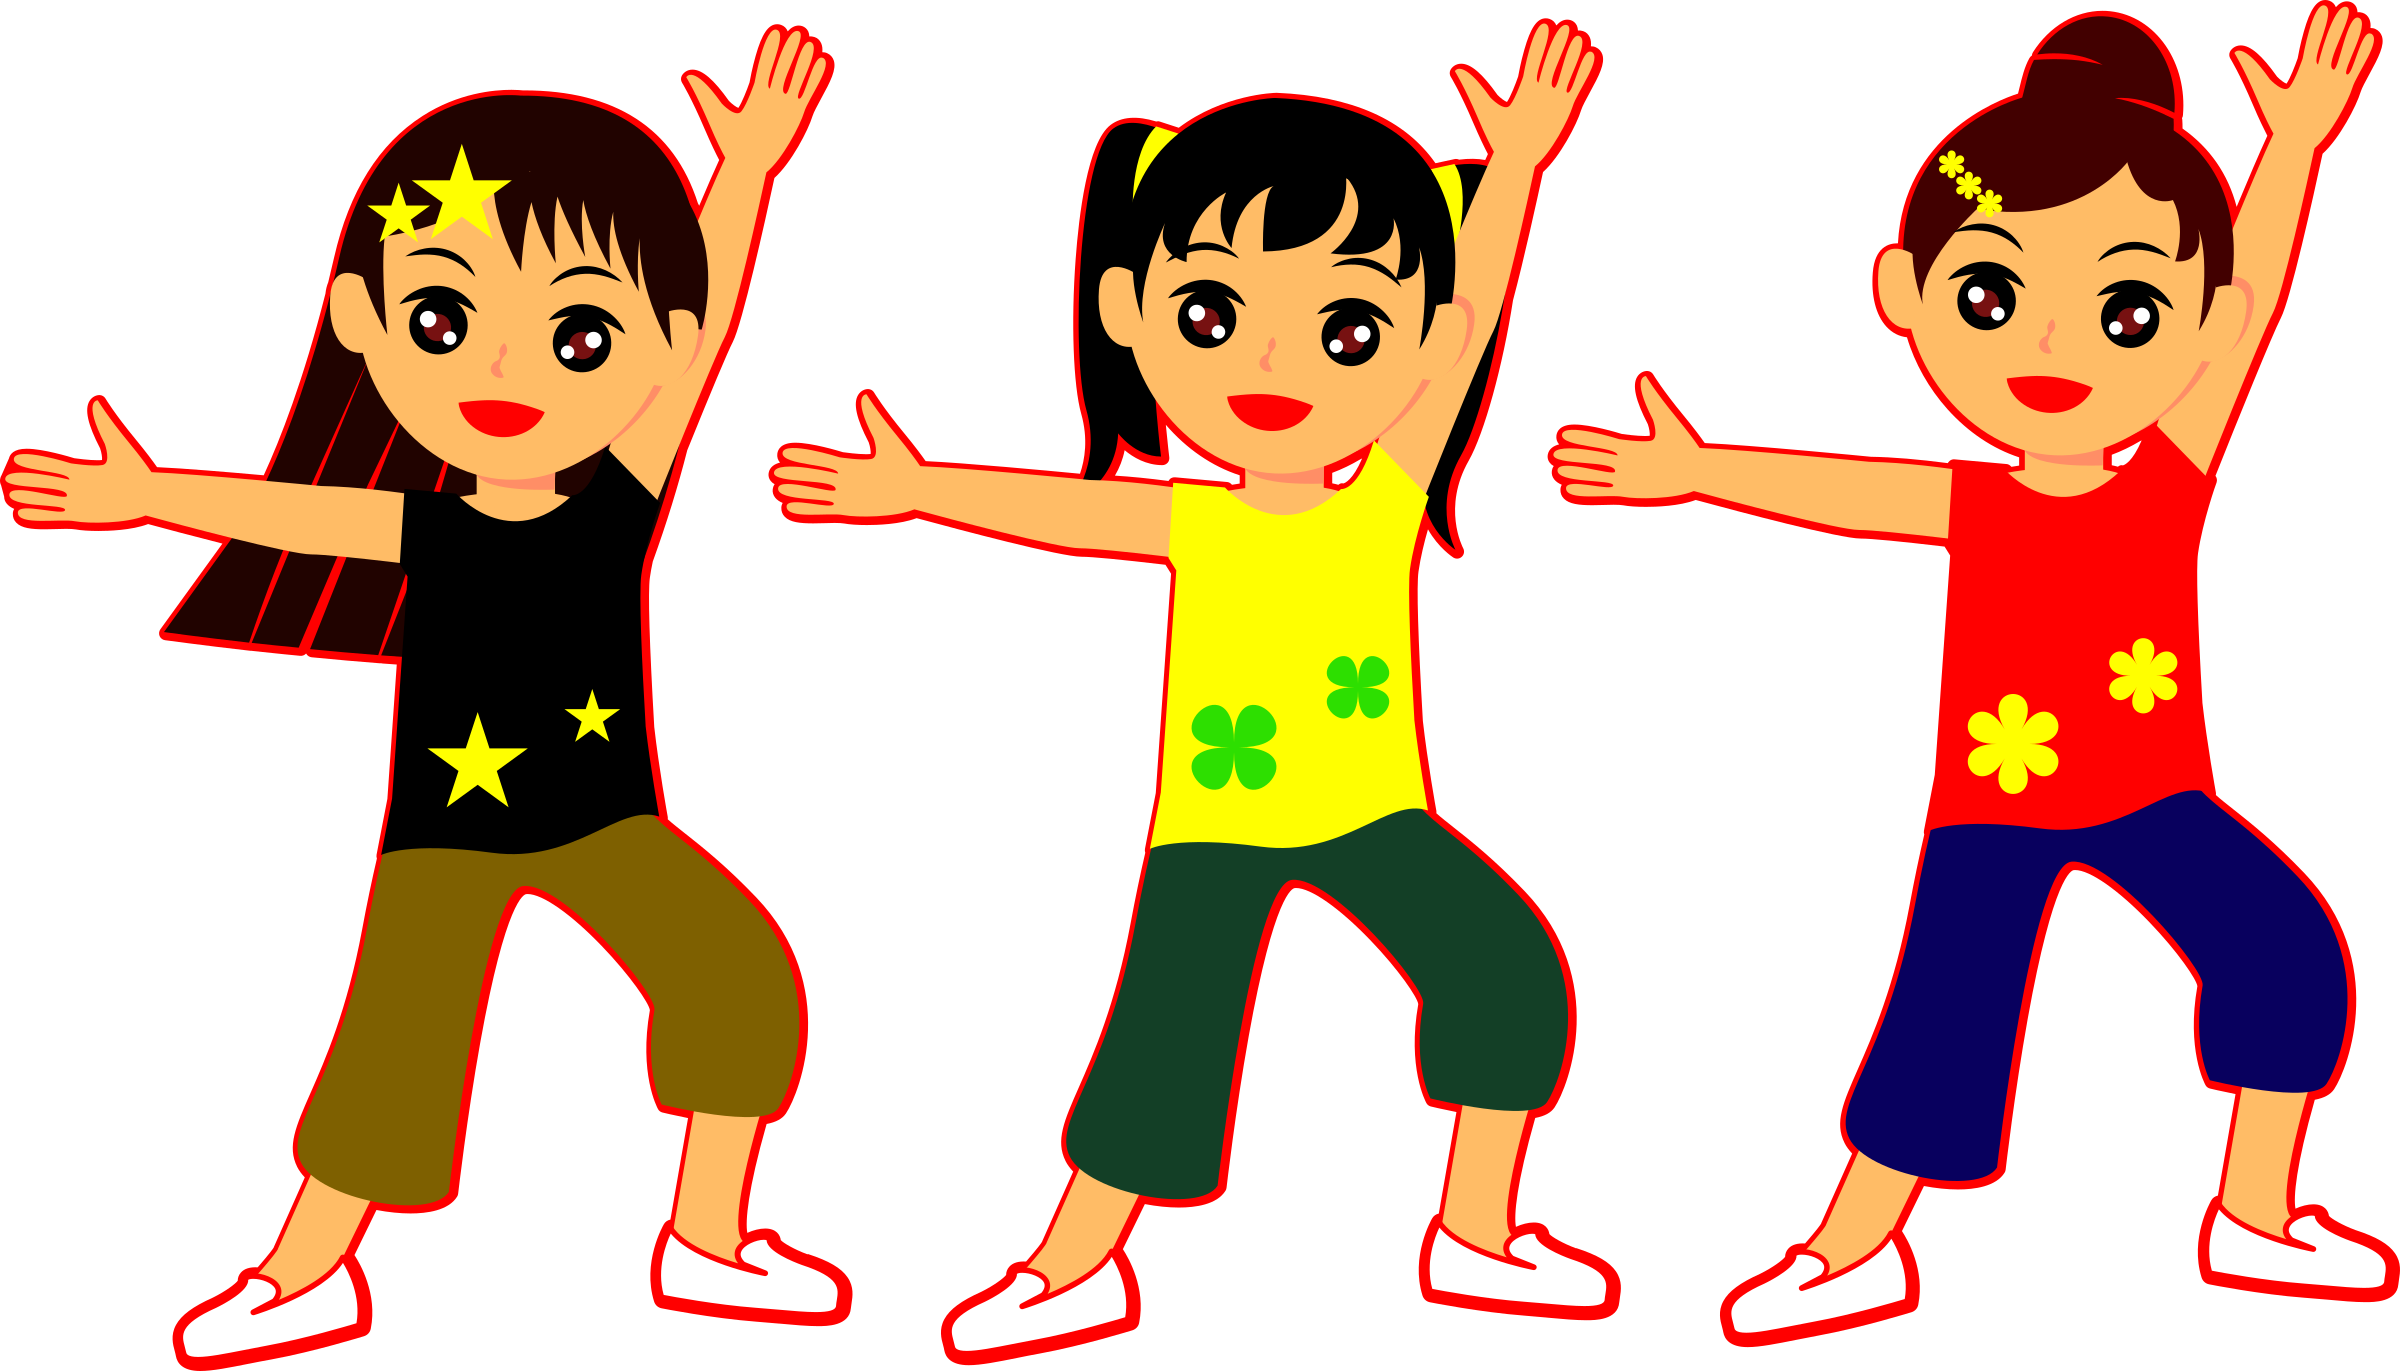 Dancing girls big image. Clipart dance group dance